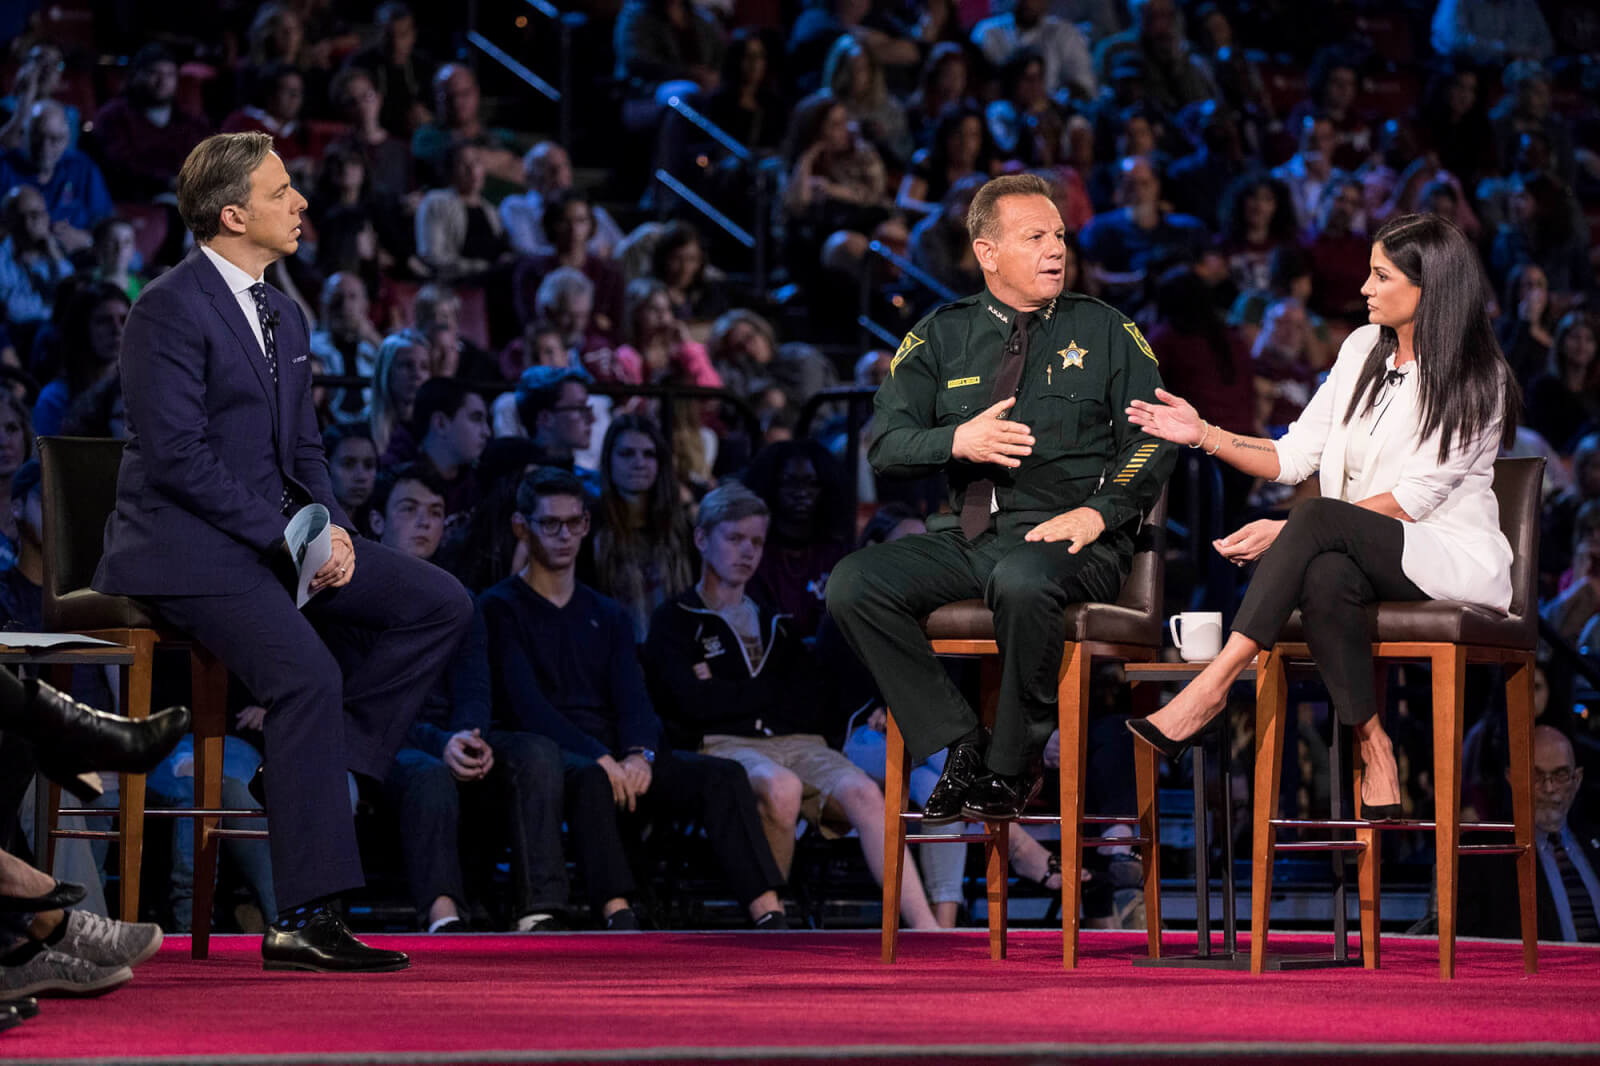 CNN anchor Jake Tapper, Broward County Sheriff Scott Israel and NRA spokesperson Dana Loesch at the CNN Town Hall at the BB&T Center